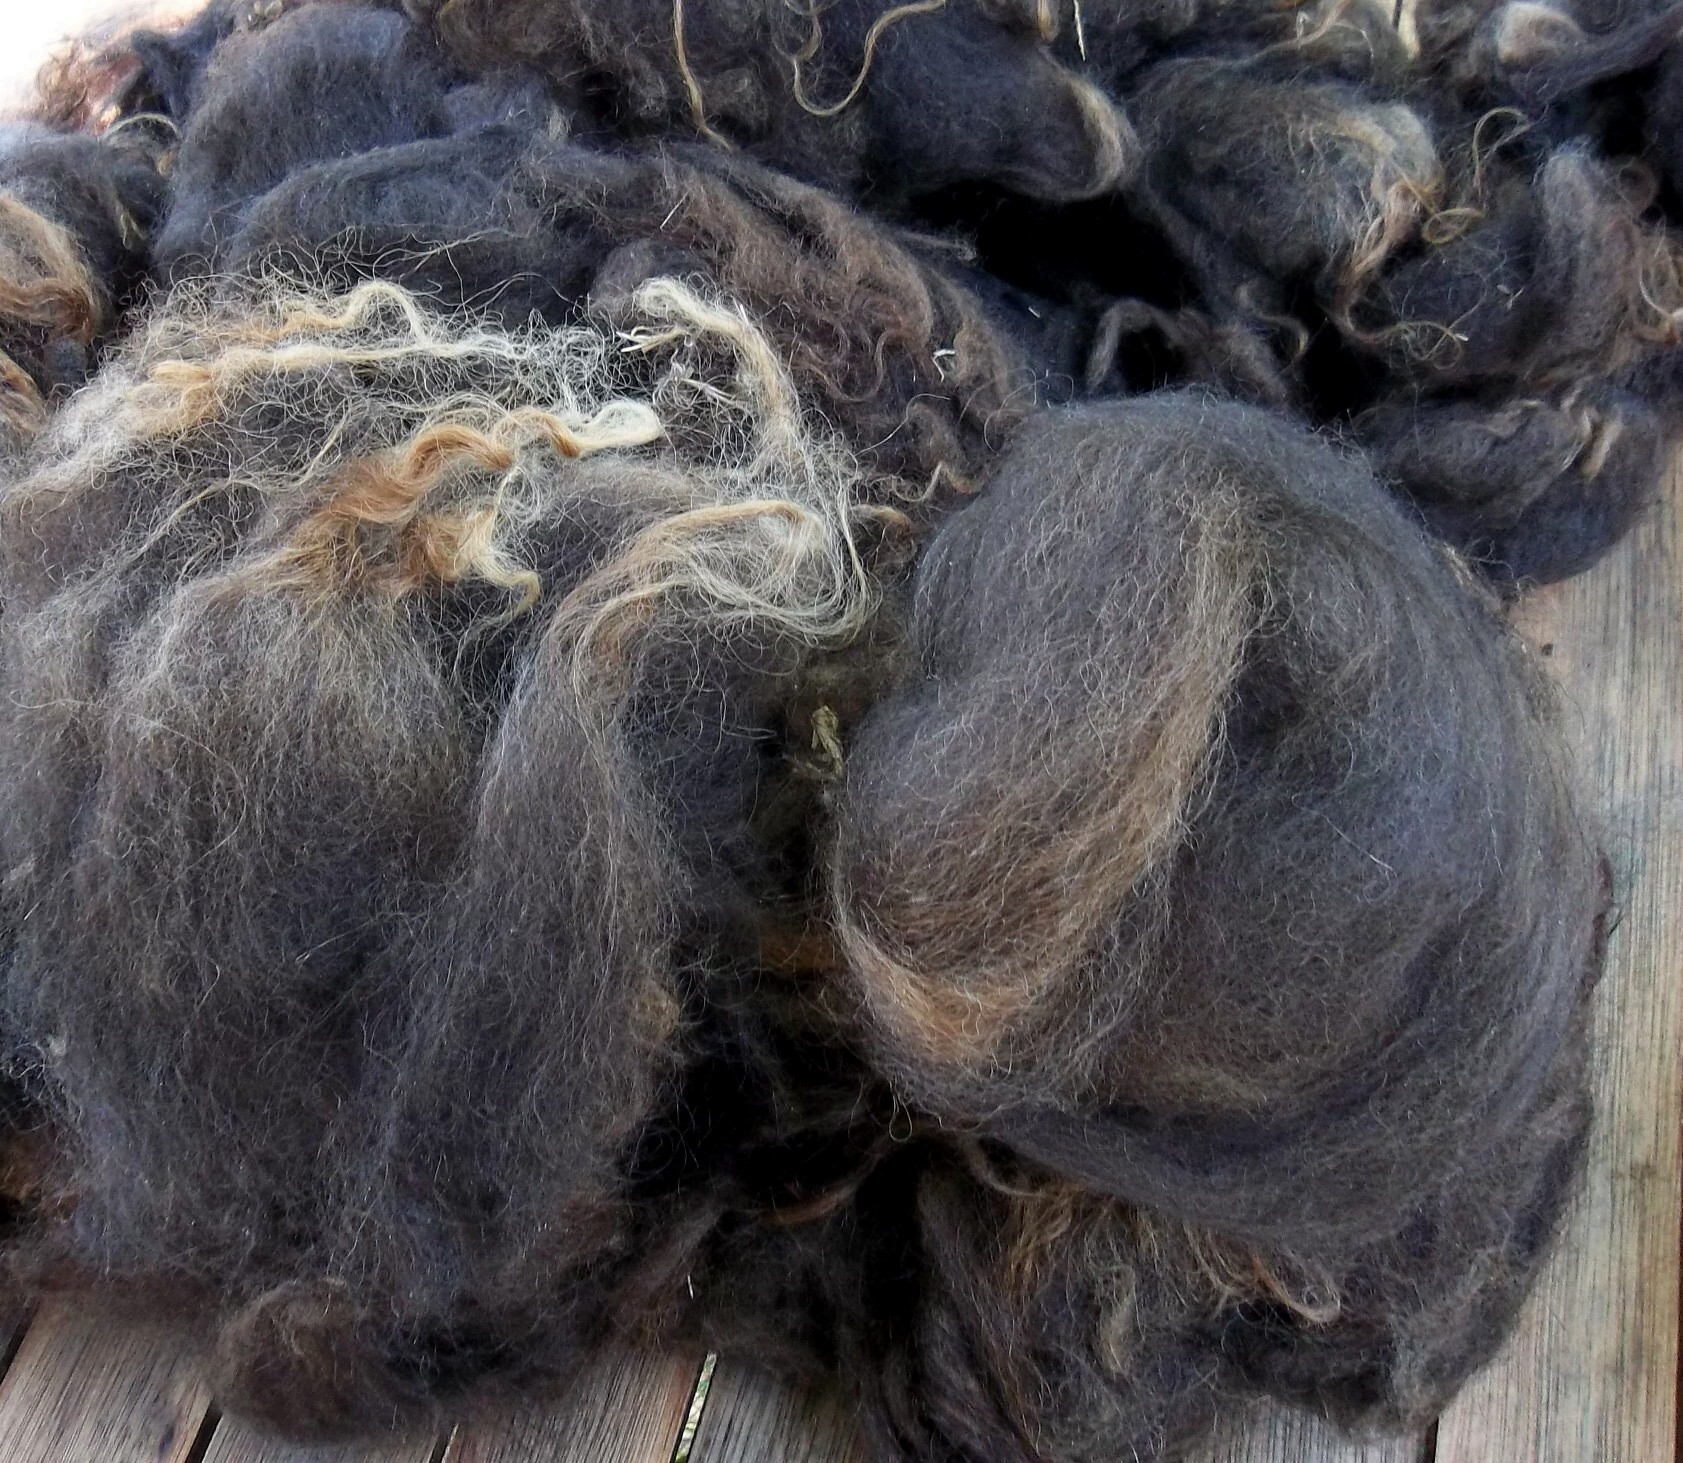 A small fleece full of possibilities. Photo: © D. Falck and used with kind permission